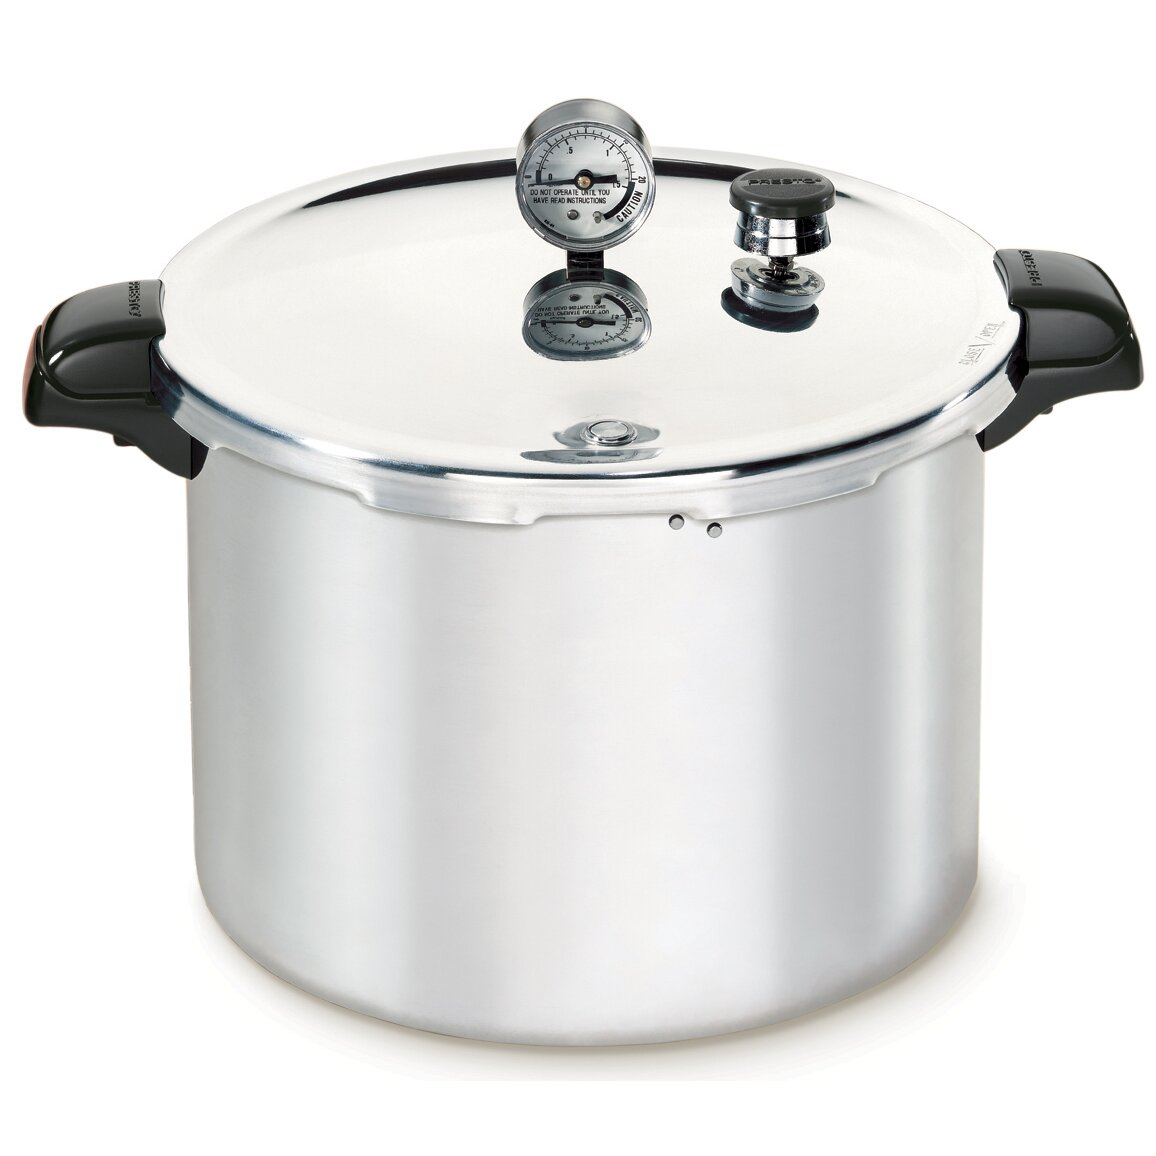 Presto Pressure Cooker And Canner Reviews Wayfair